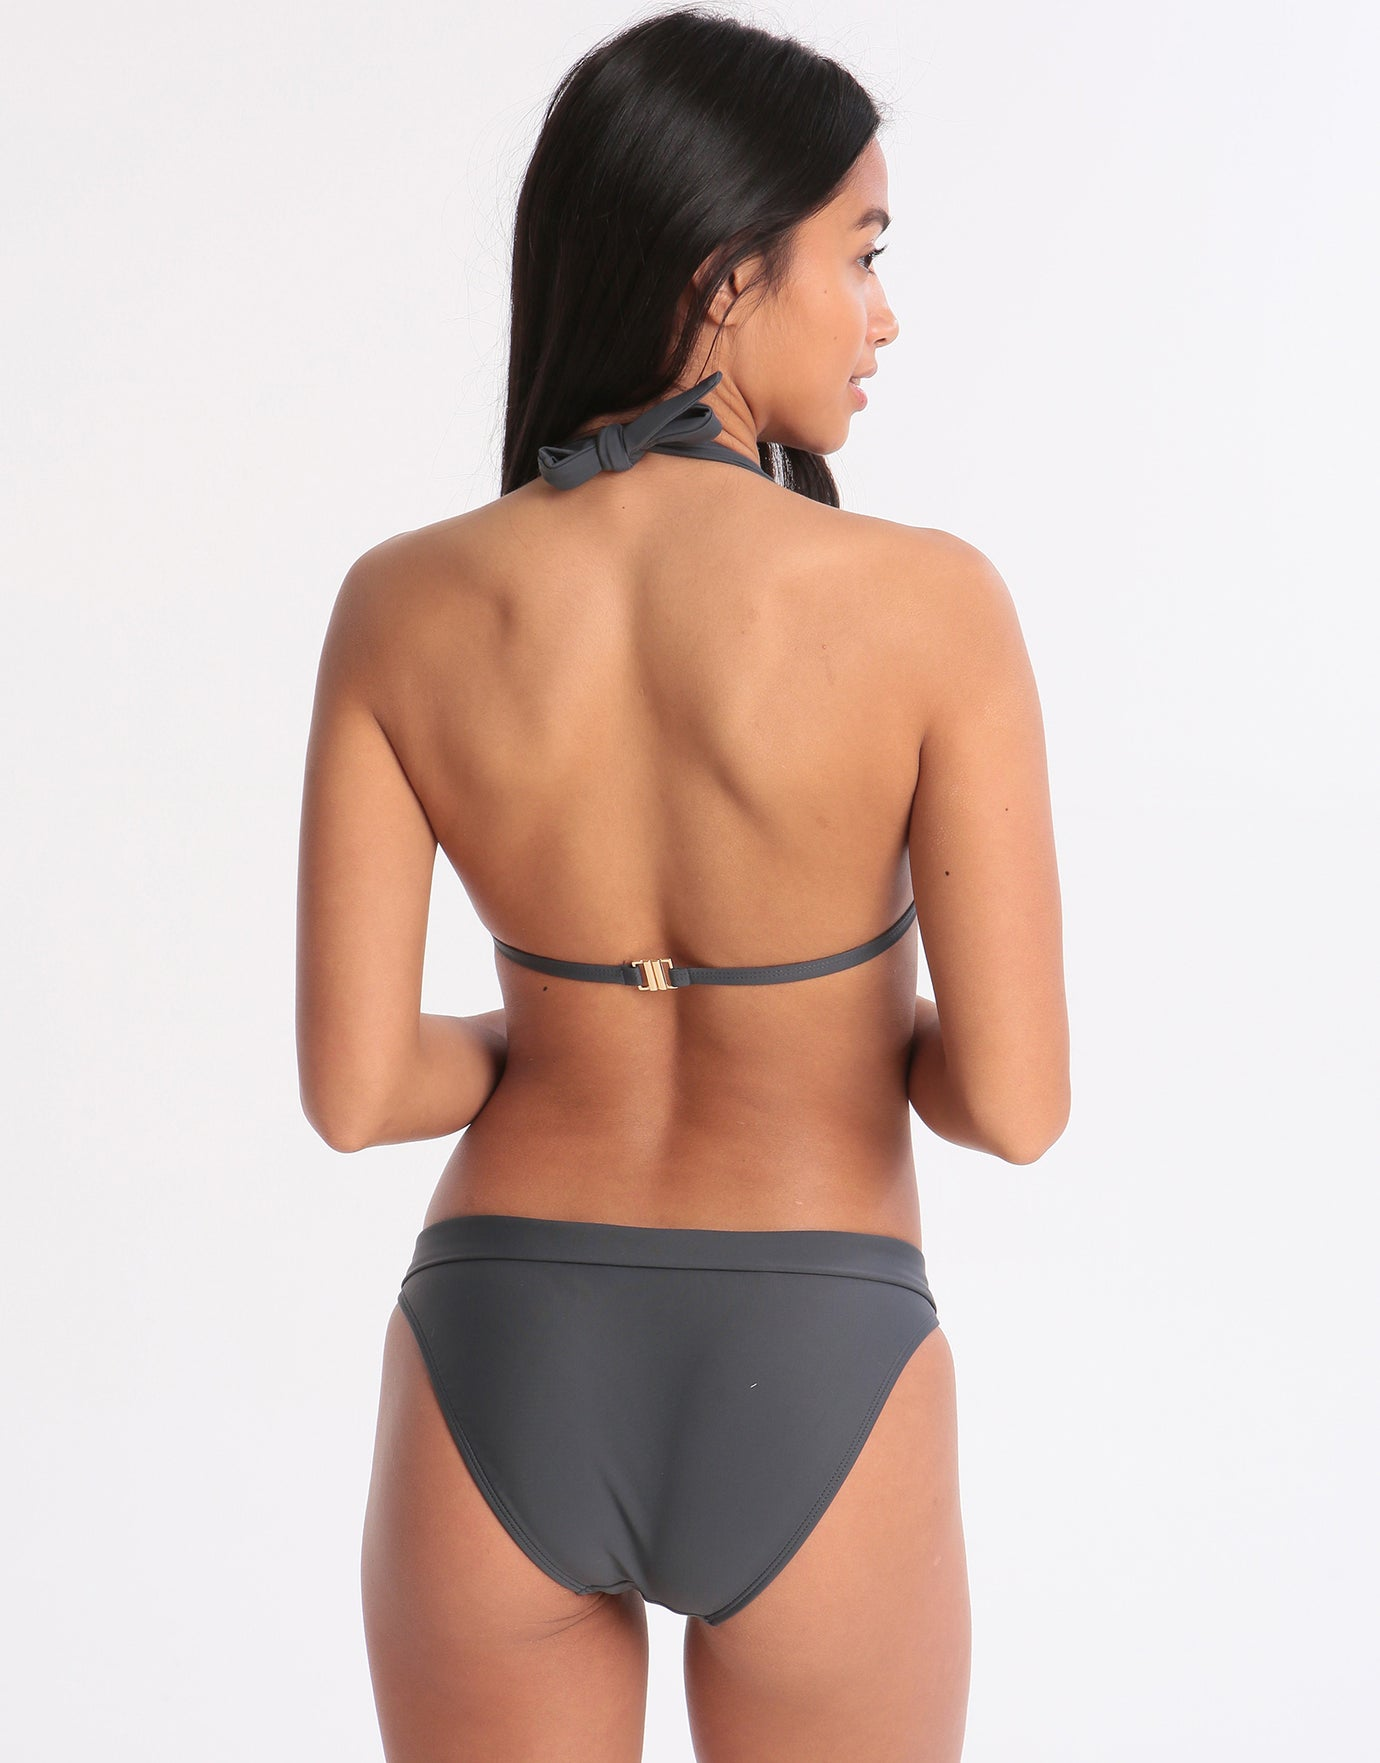 West Seventy Nine Banded Bikini Bottom - Anthracite